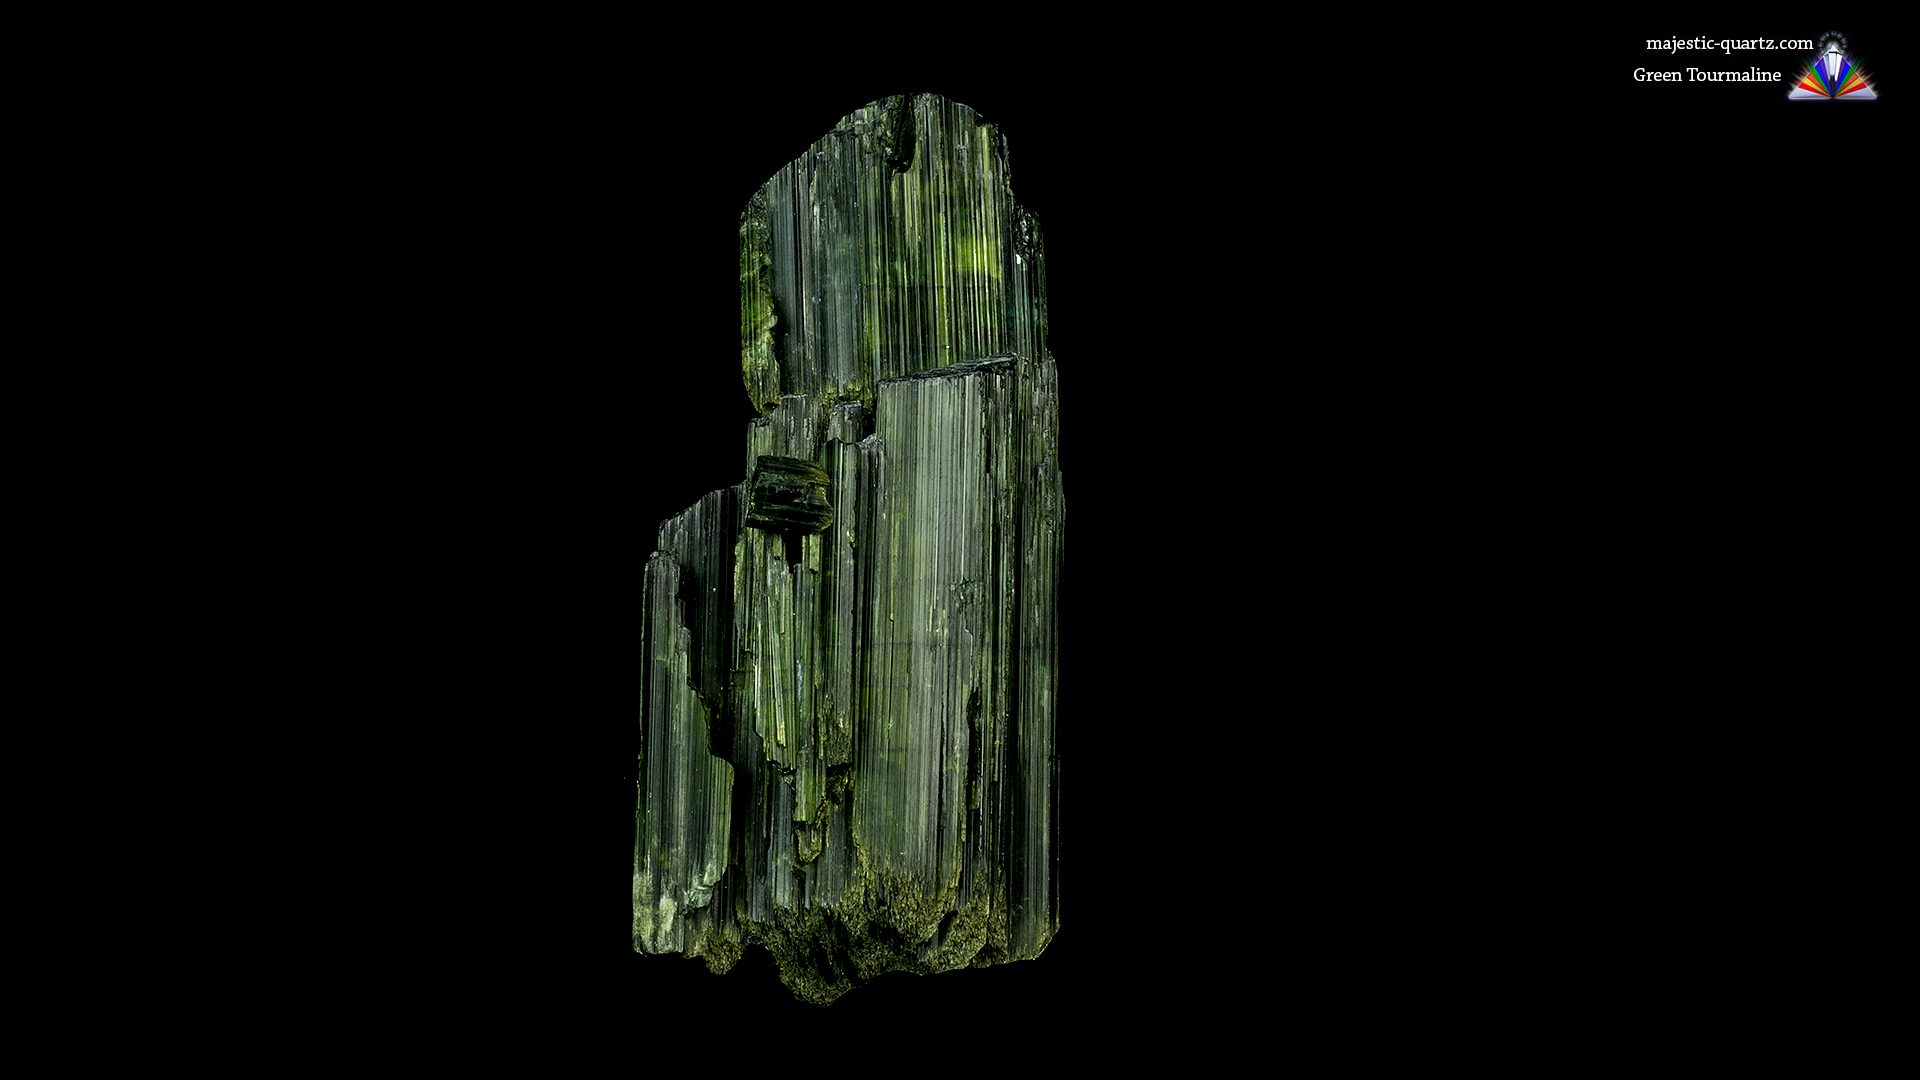 Green Tourmaline Properties and Meaning - Photgraph by Anthony Bradford